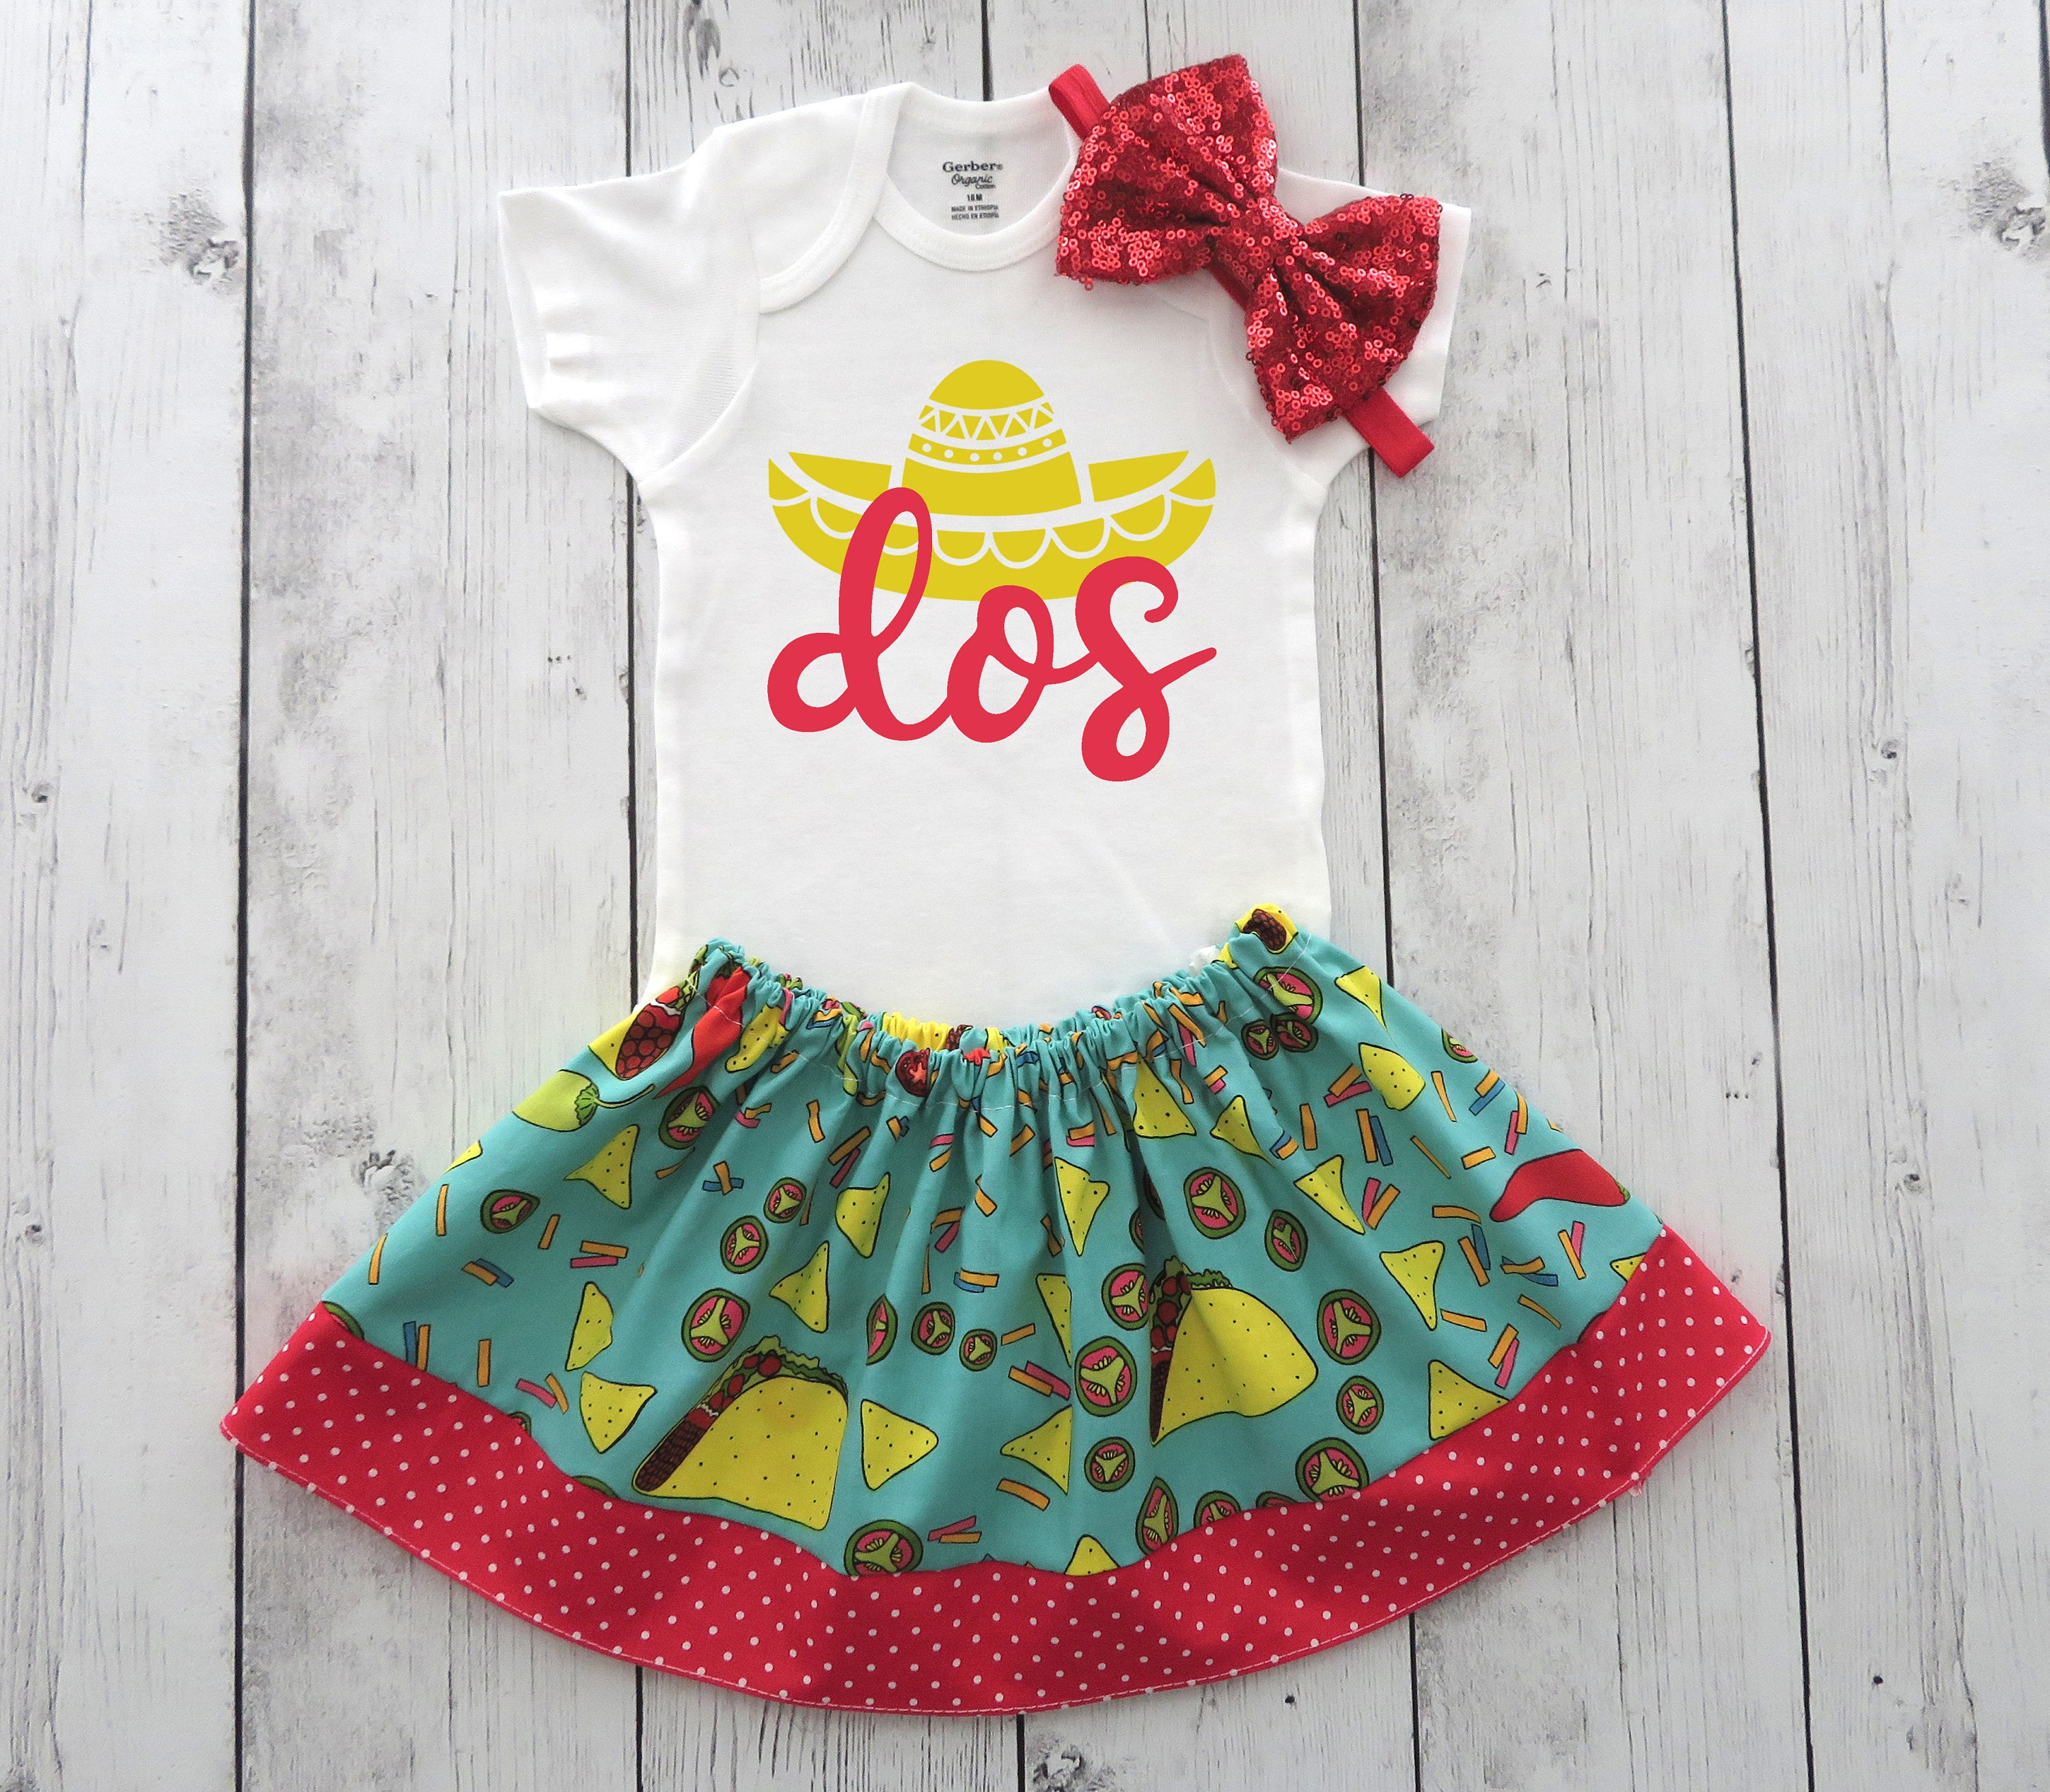 Taco Twosday Birthday Outfit for baby girl - taco second birthday outfit girl, fiesta bday party, taco two-sday, dos, 2nd birthday